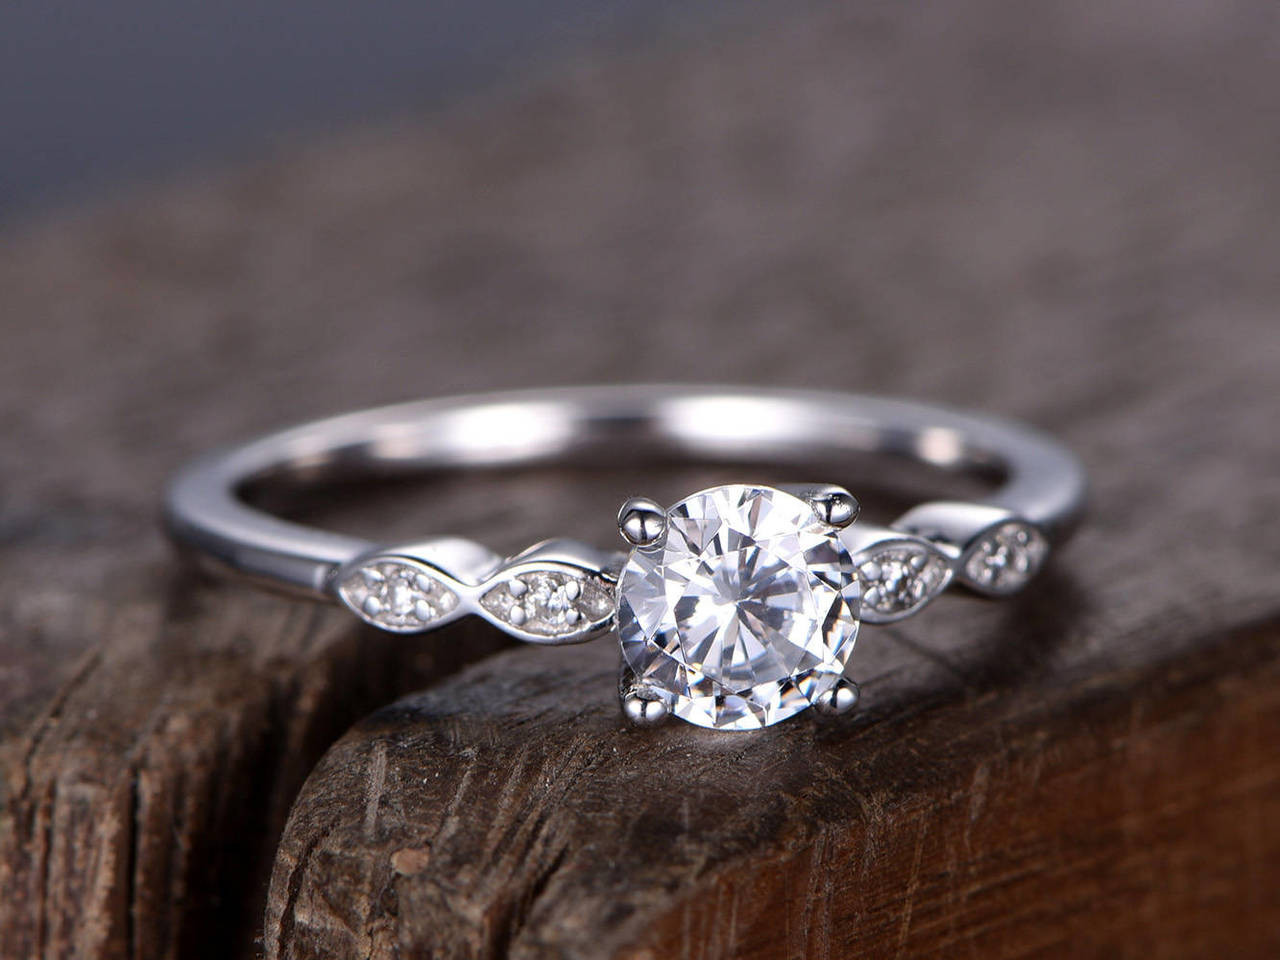 178c48df26017 5mm Round Cut CZ Engagement ring,925 sterling silver wedding band,White  gold plated,Simple and classic Bridal ring,Retro vintage, pave set